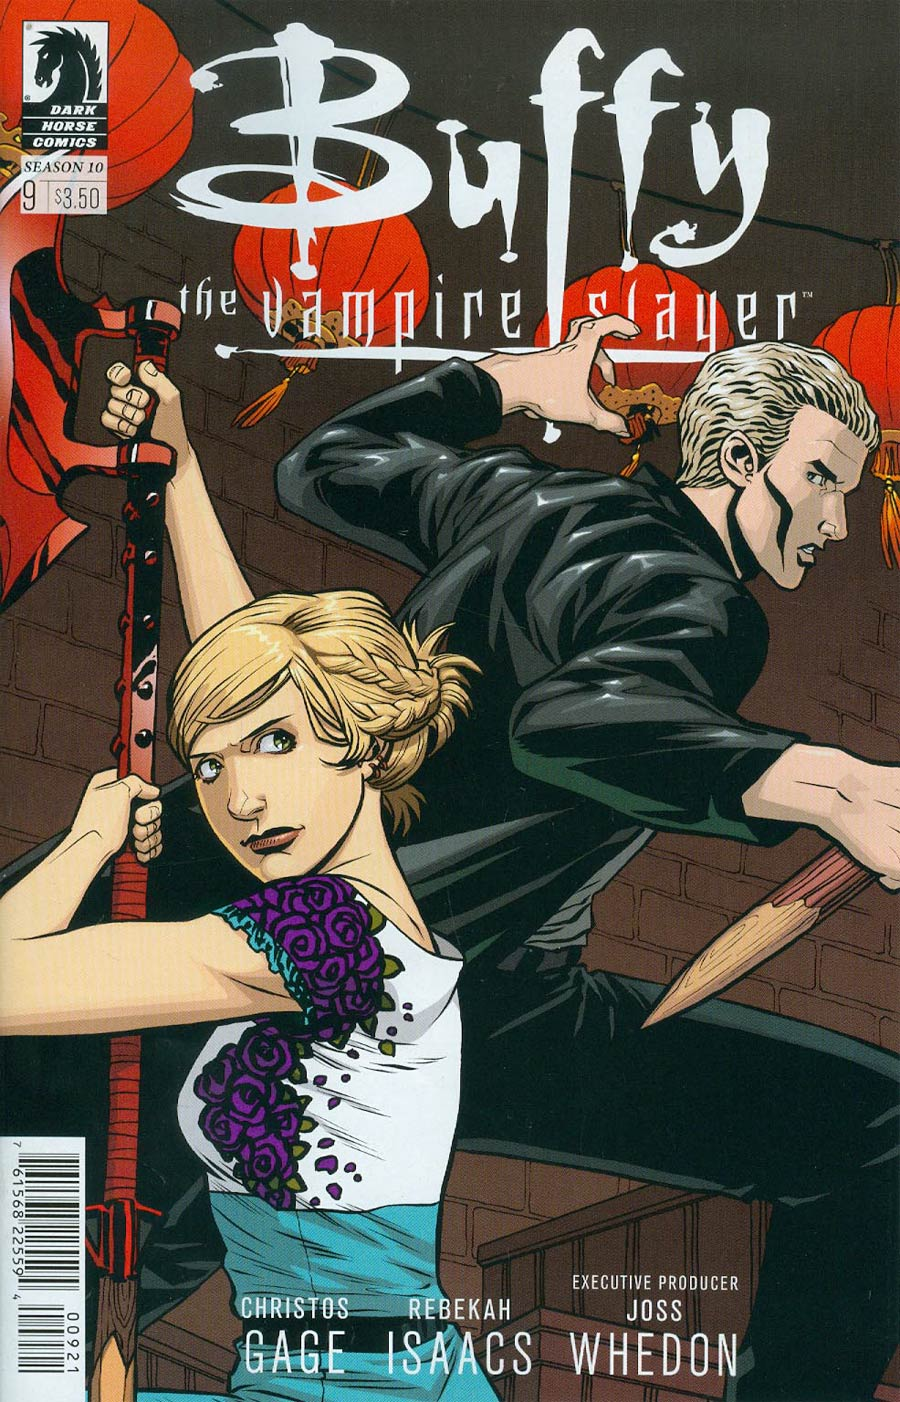 Buffy The Vampire Slayer Season 10 #9 Cover B Variant Rebekah Isaacs Cover